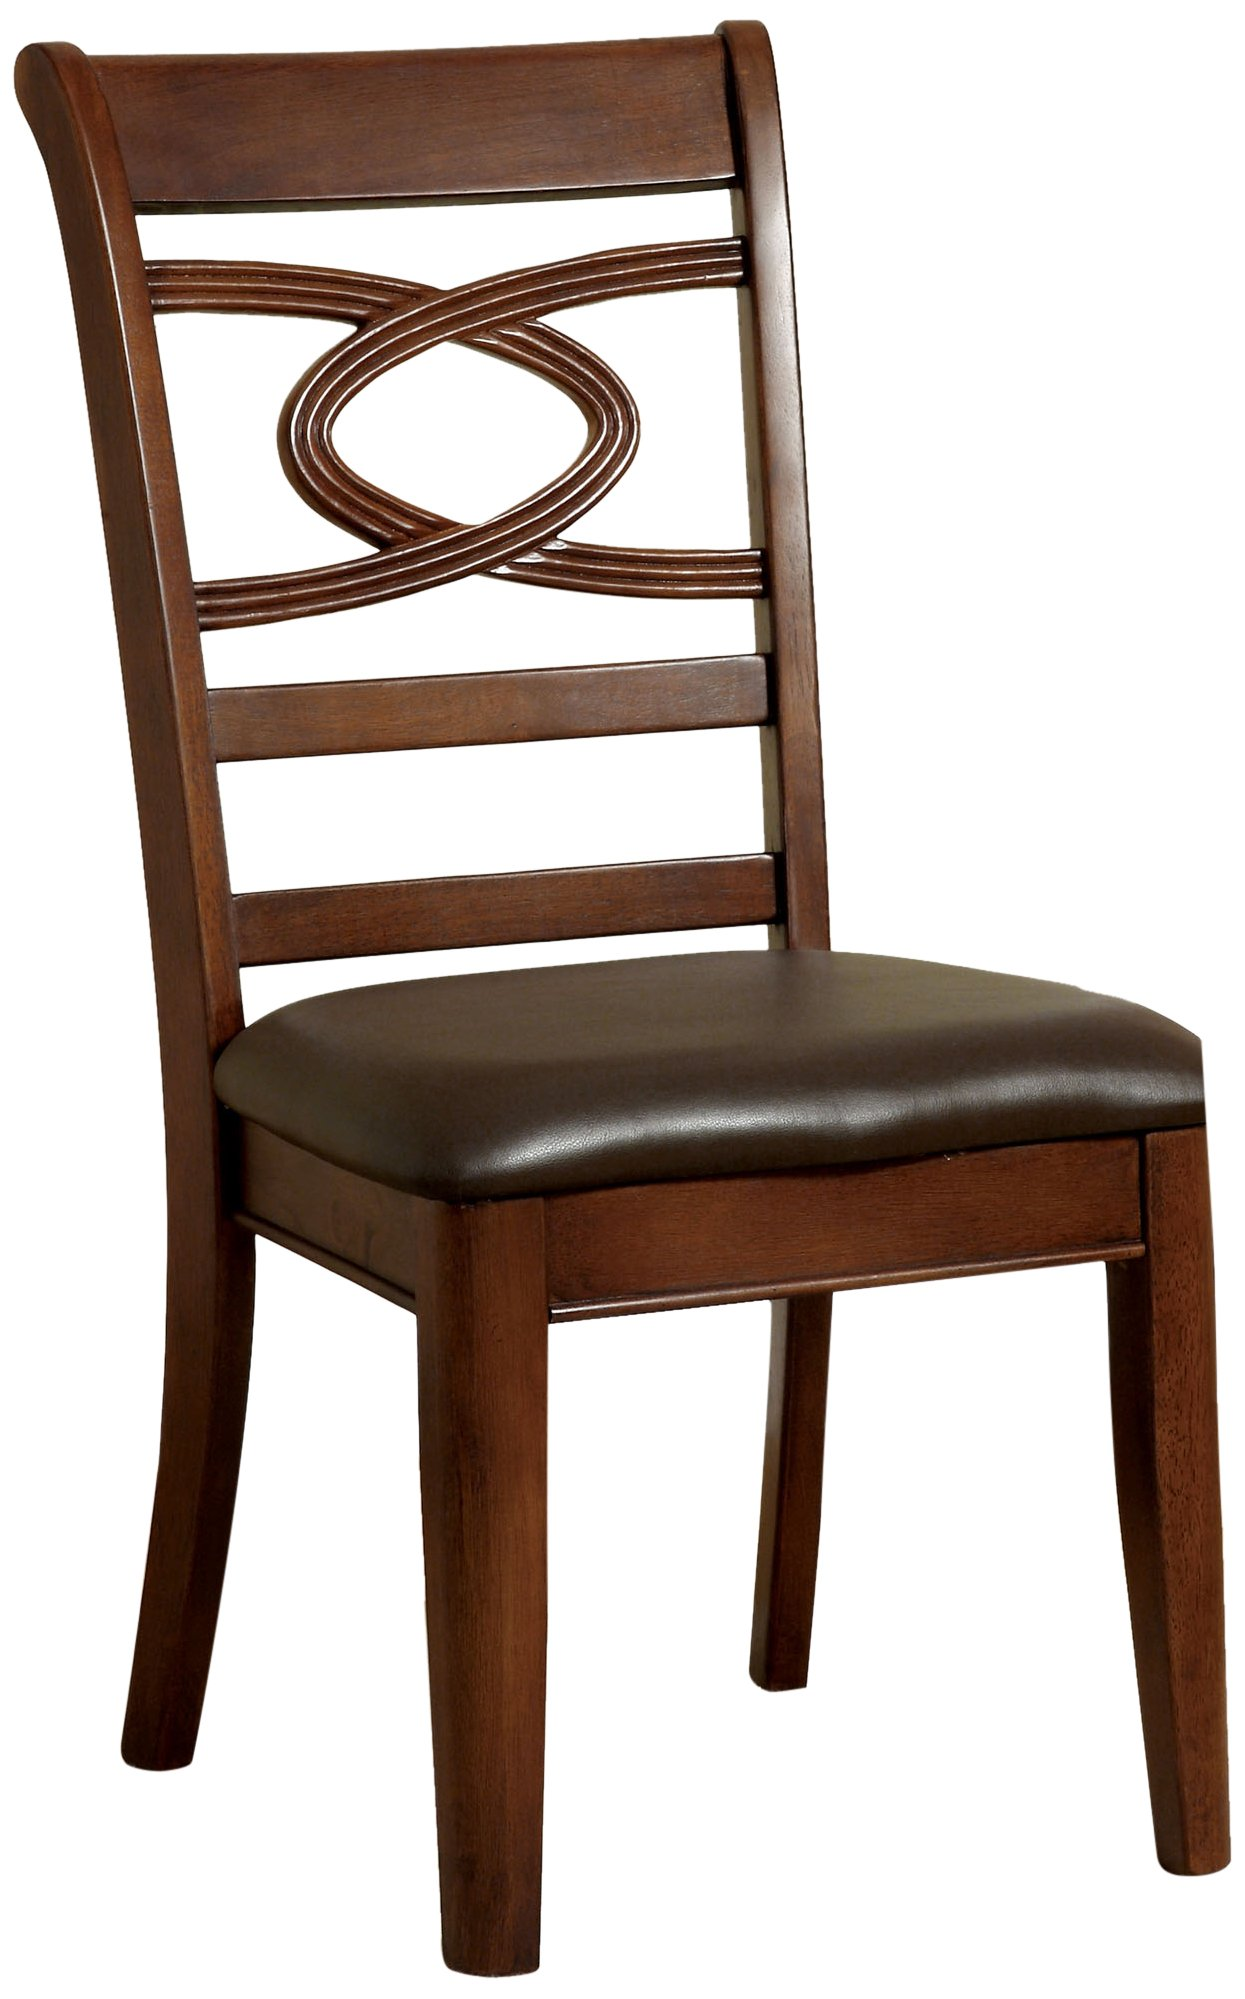 HOMES: Inside + Out Iohomes Reminson Modern Formal Side Chair, Brown Cherry Finish, Set of 2